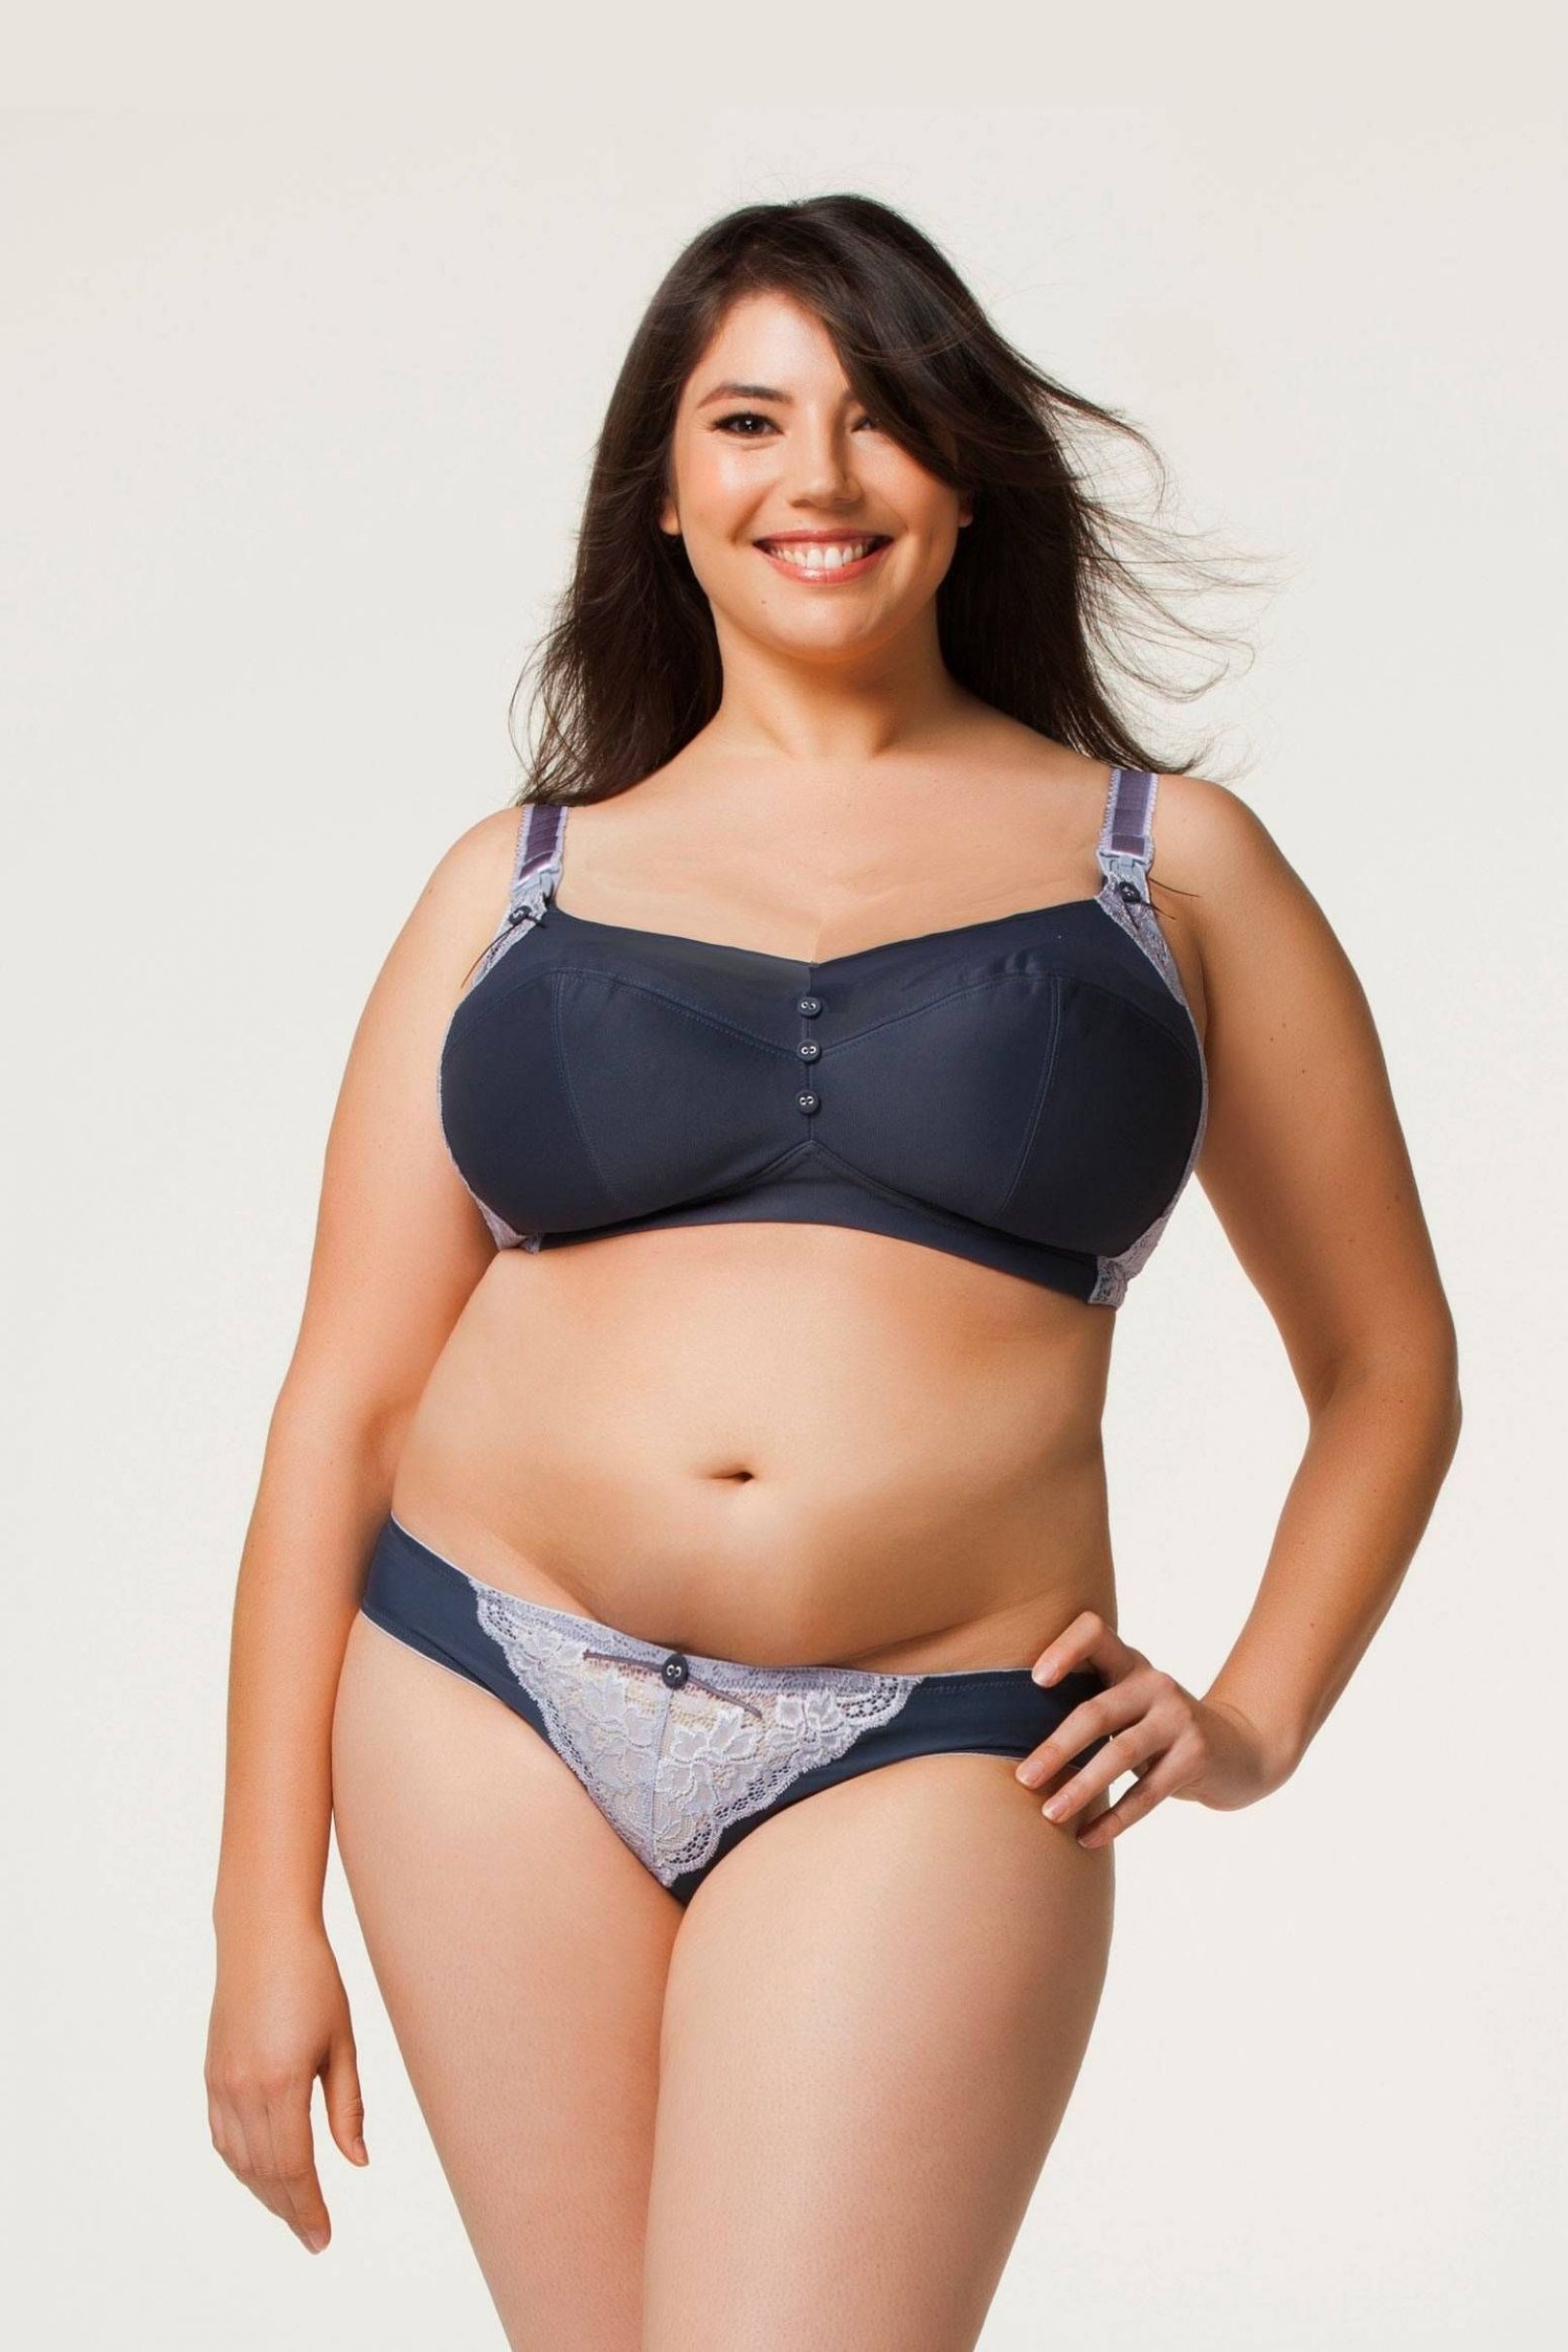 Sorbet Plus Size Non Wire Nursing Bra | 14 gorditas bellas ...